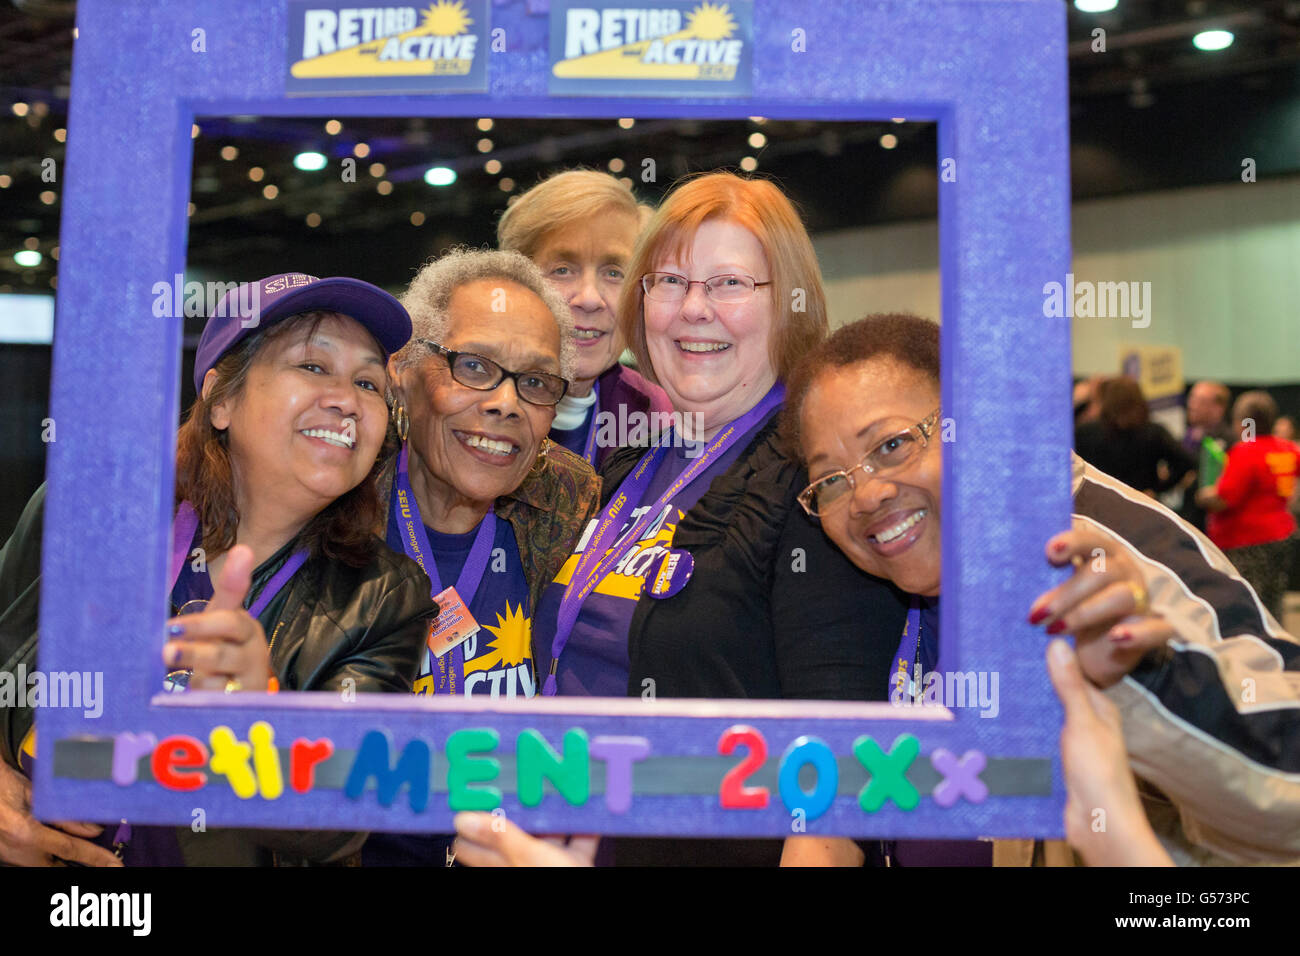 Detroit, Michigan - Retirees at the Service Employees International Union convention. - Stock Image